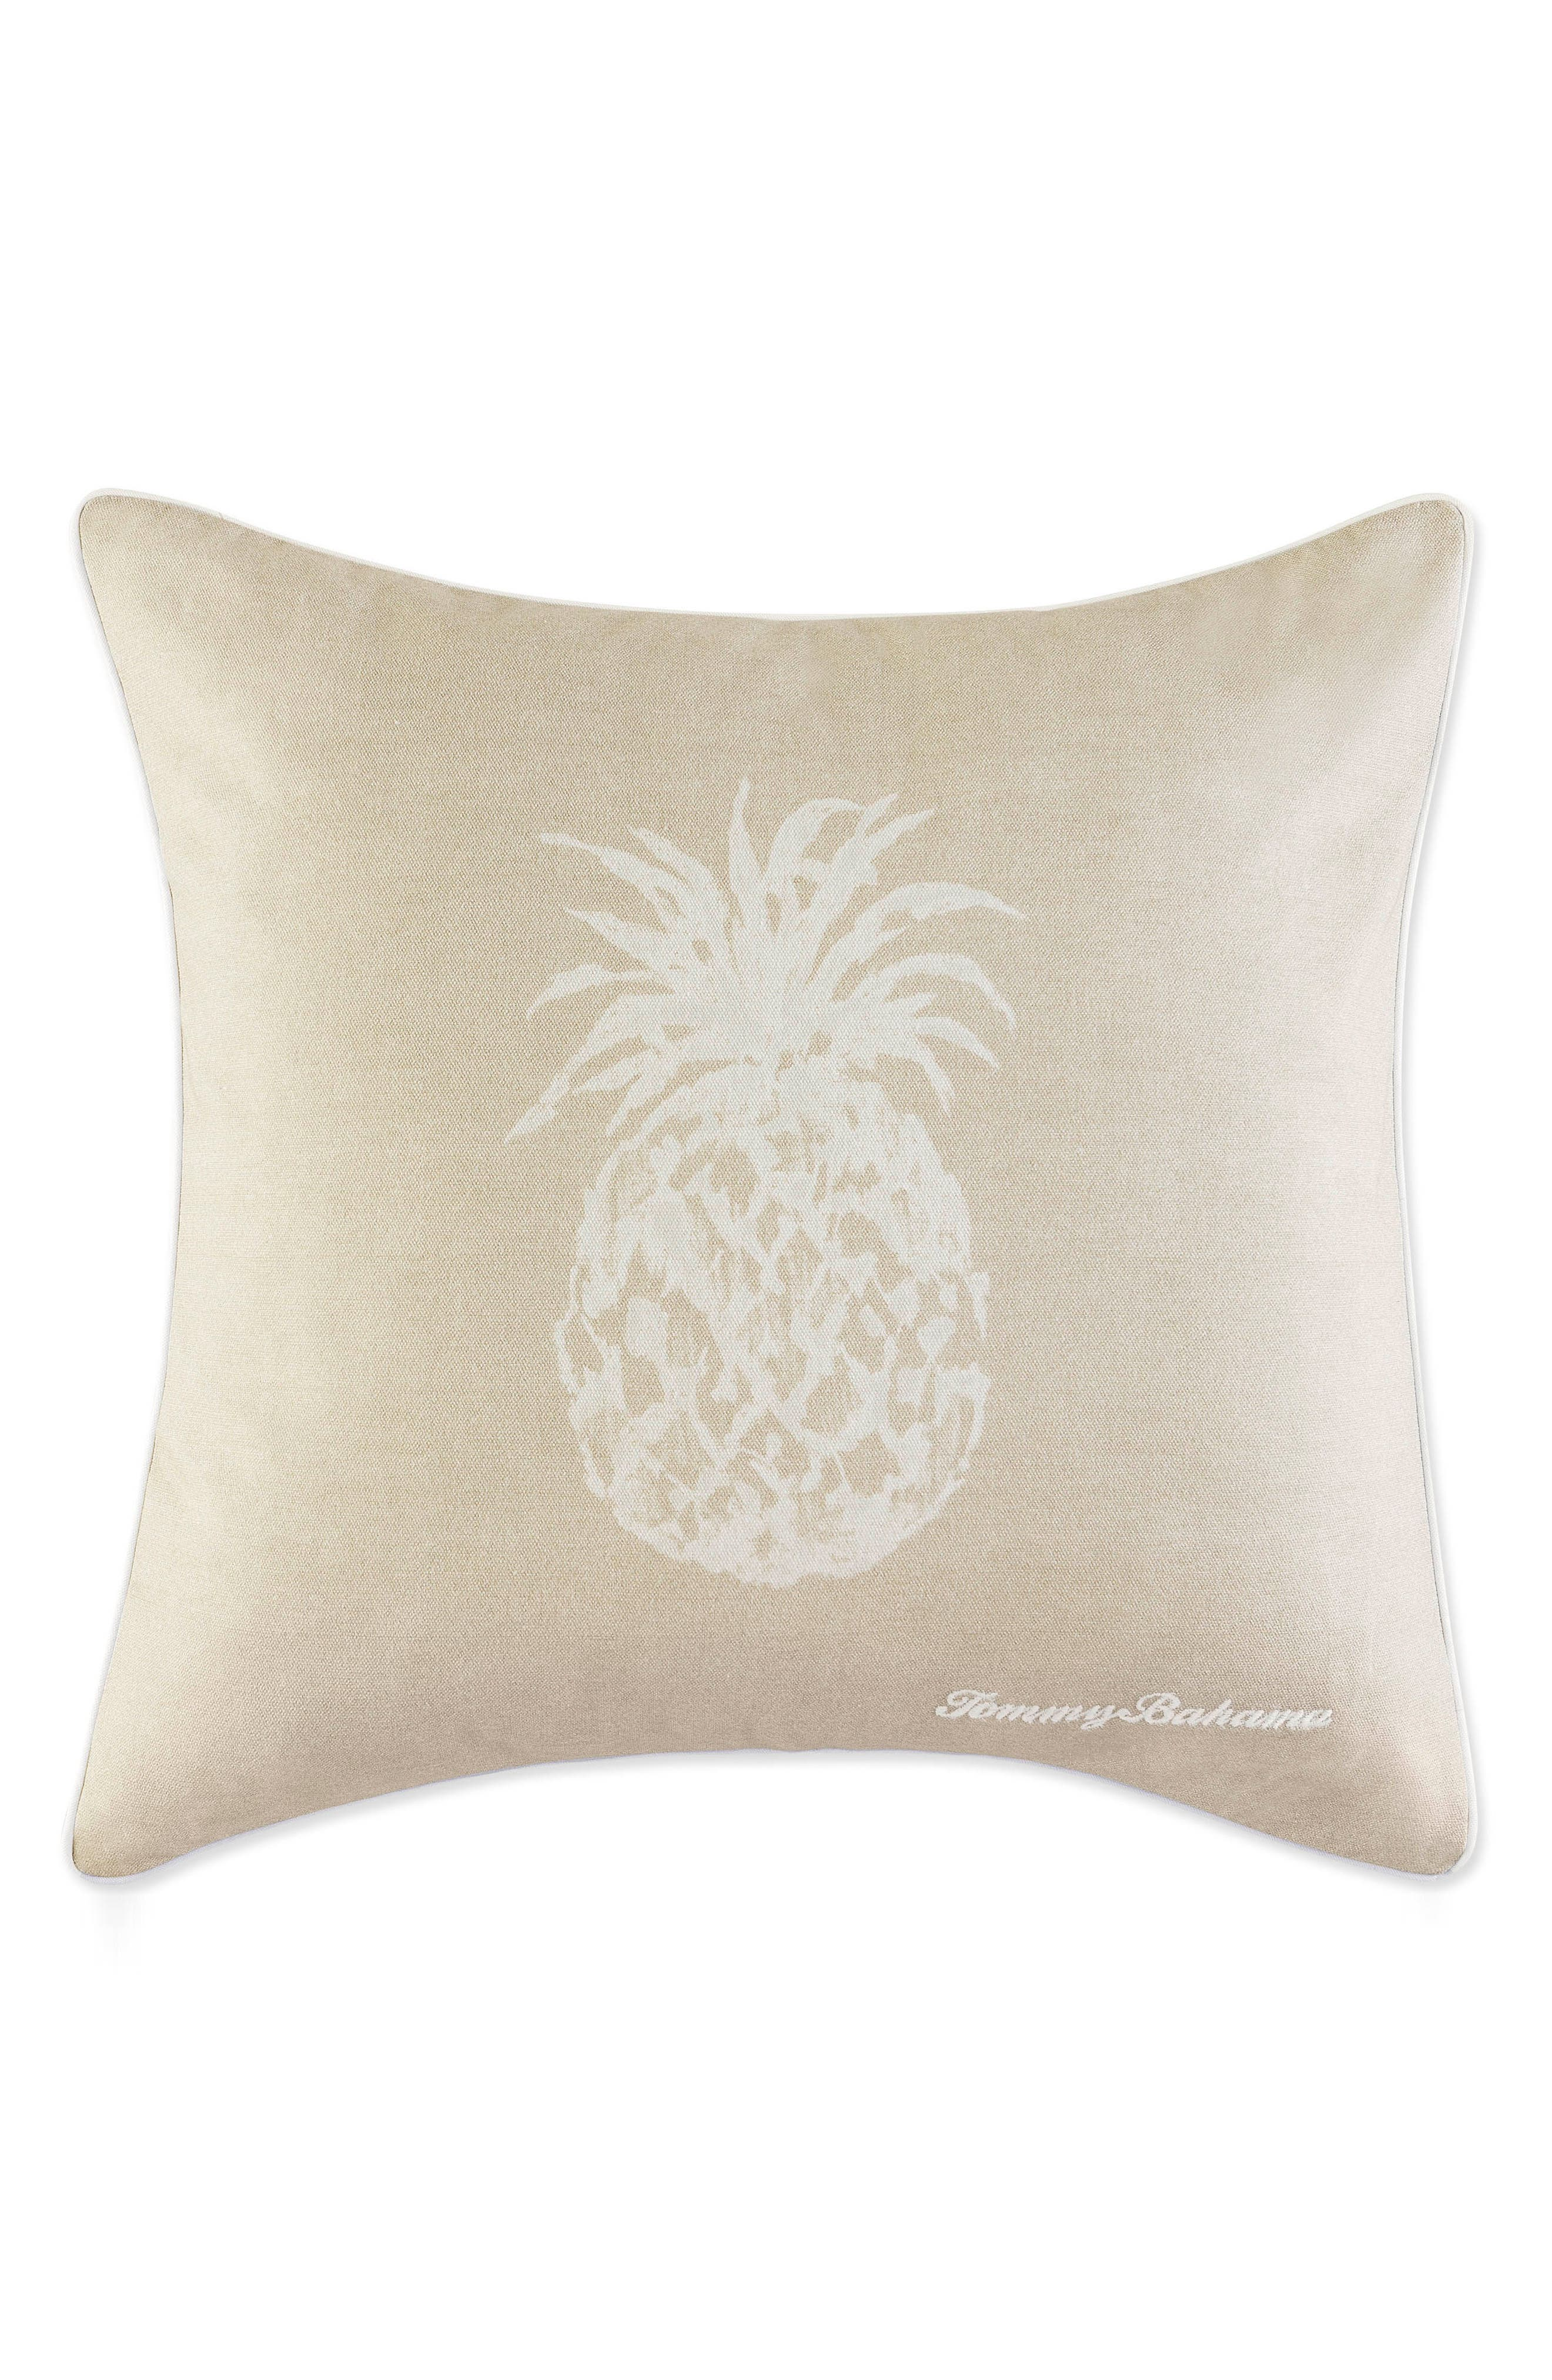 Pineapple Accent Pillow,                         Main,                         color, SAND